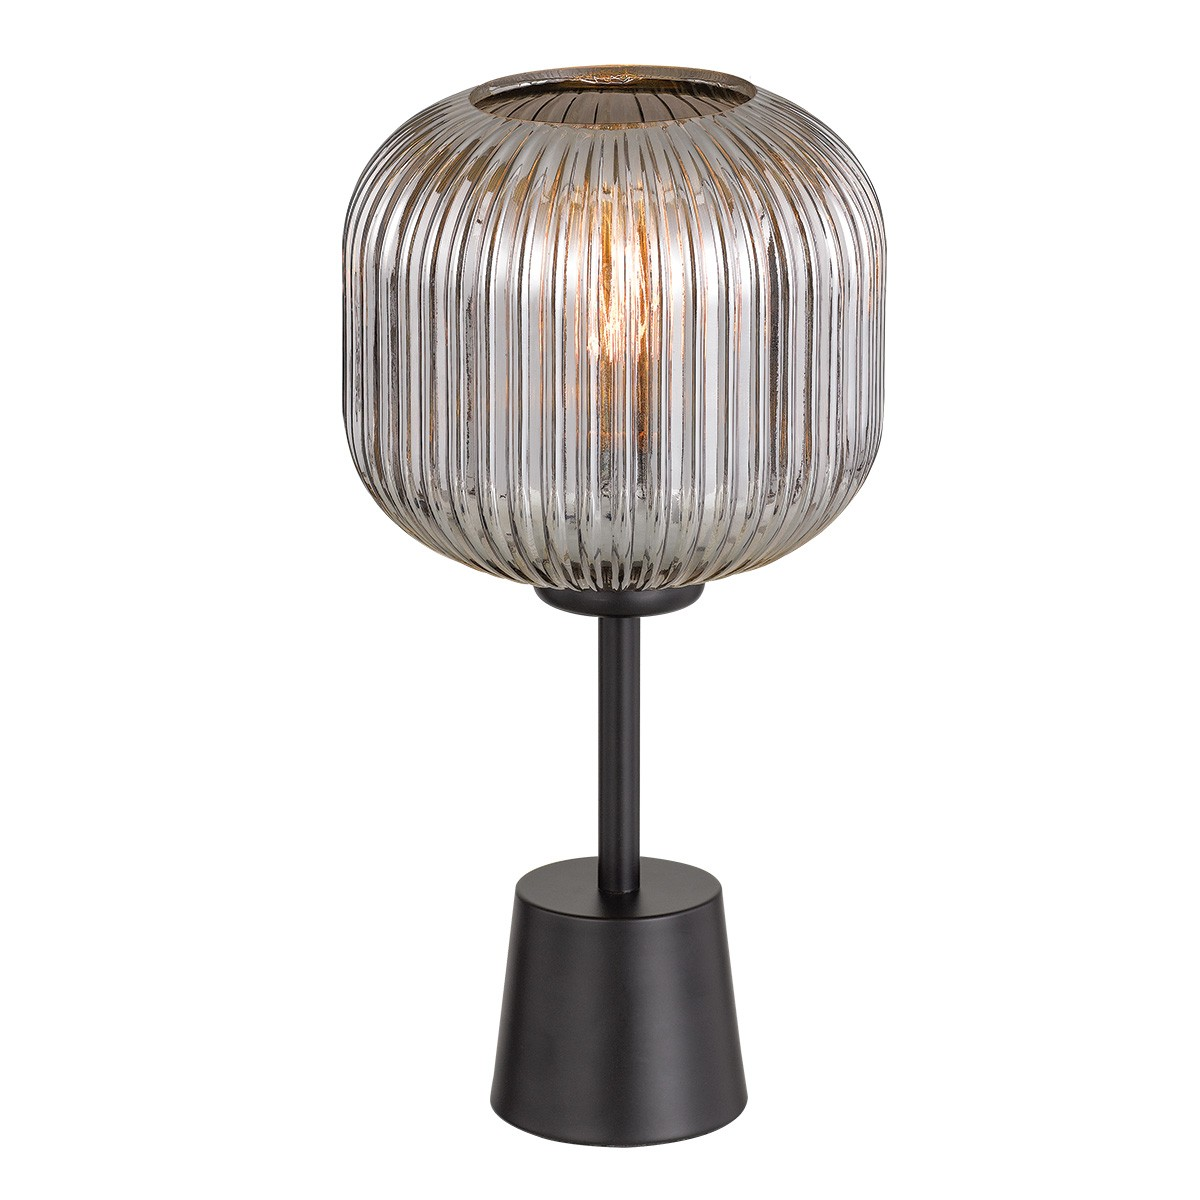 Bobo Metal & Glass Table Lamp, Black / Smoke